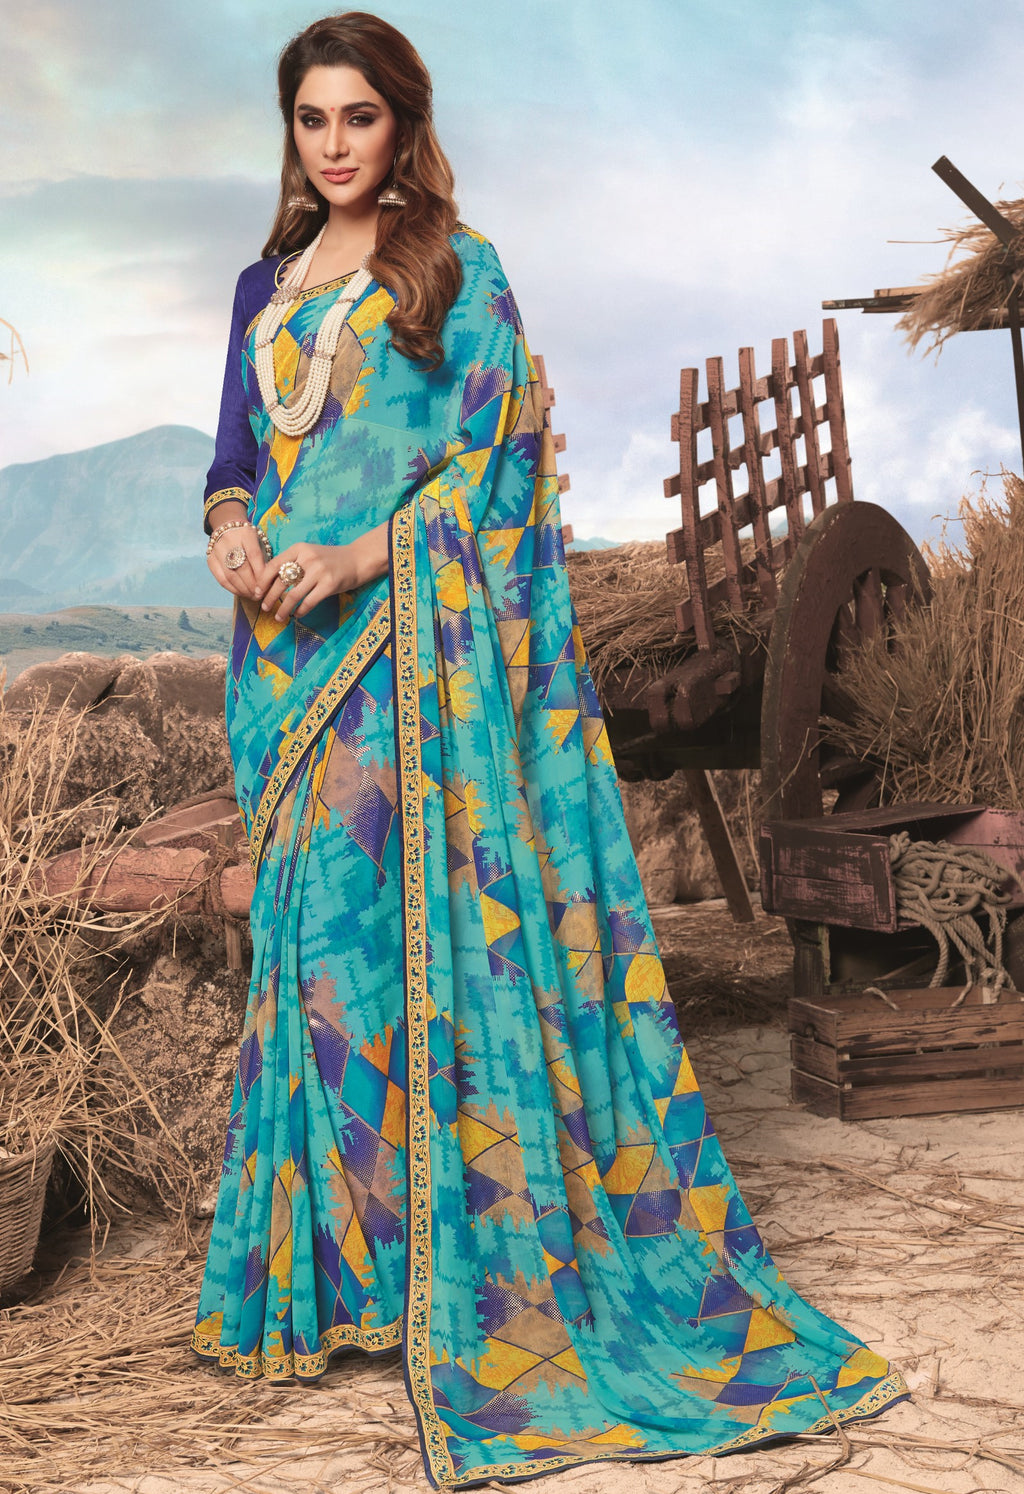 Sky Blue Color Georgette Digital Print Festive Sarees NYF-7858